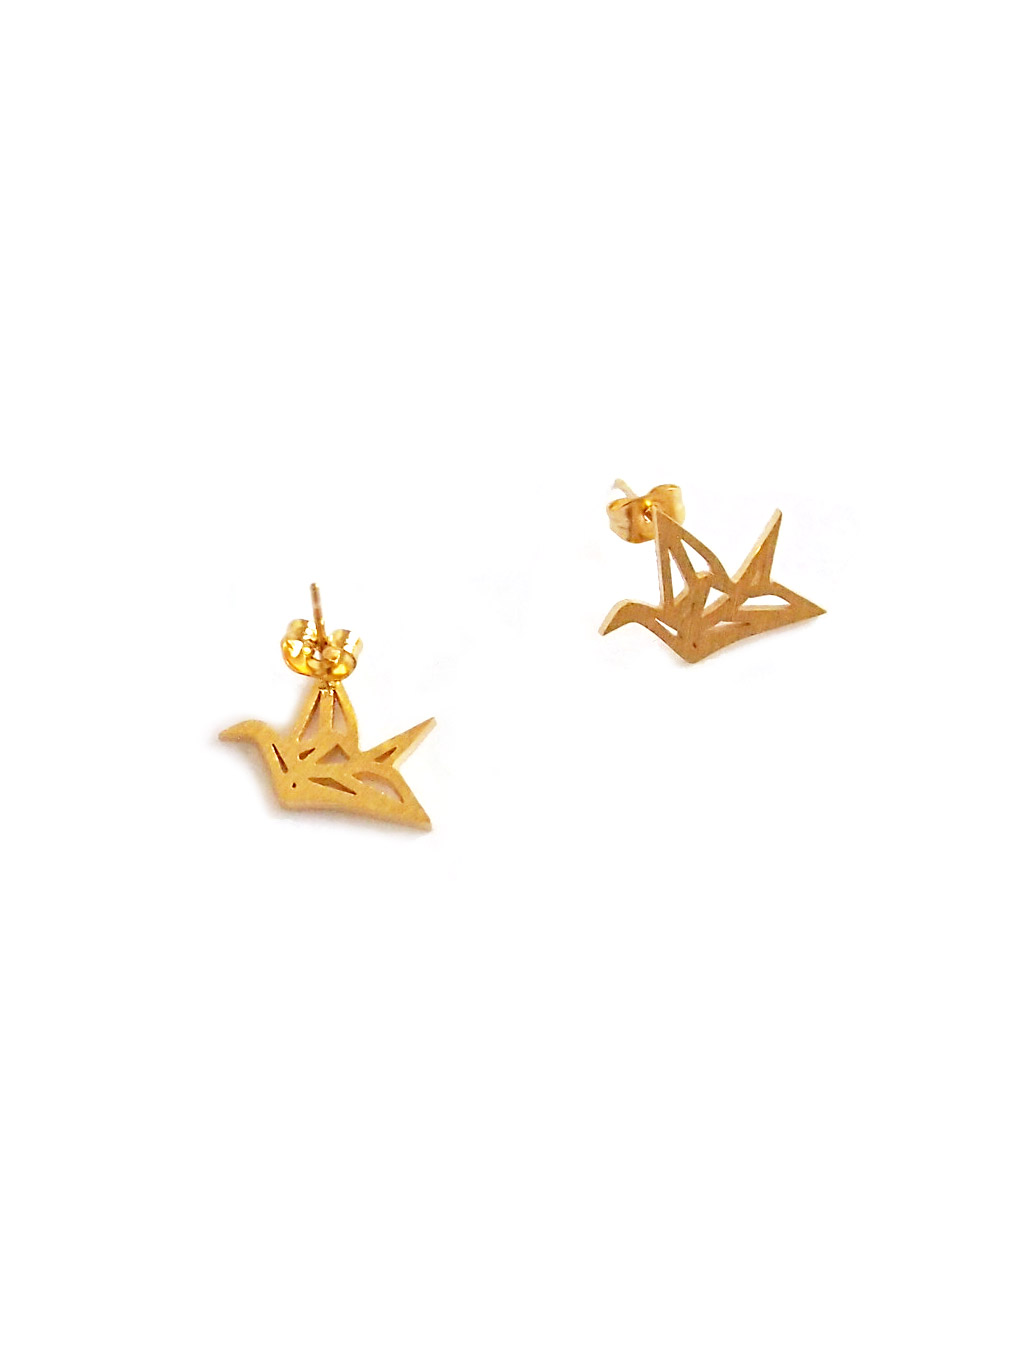 (Back in Stock) (Stainless Steel) Mini Origami Crane Earrings in Gold | Arva.co - photo#4